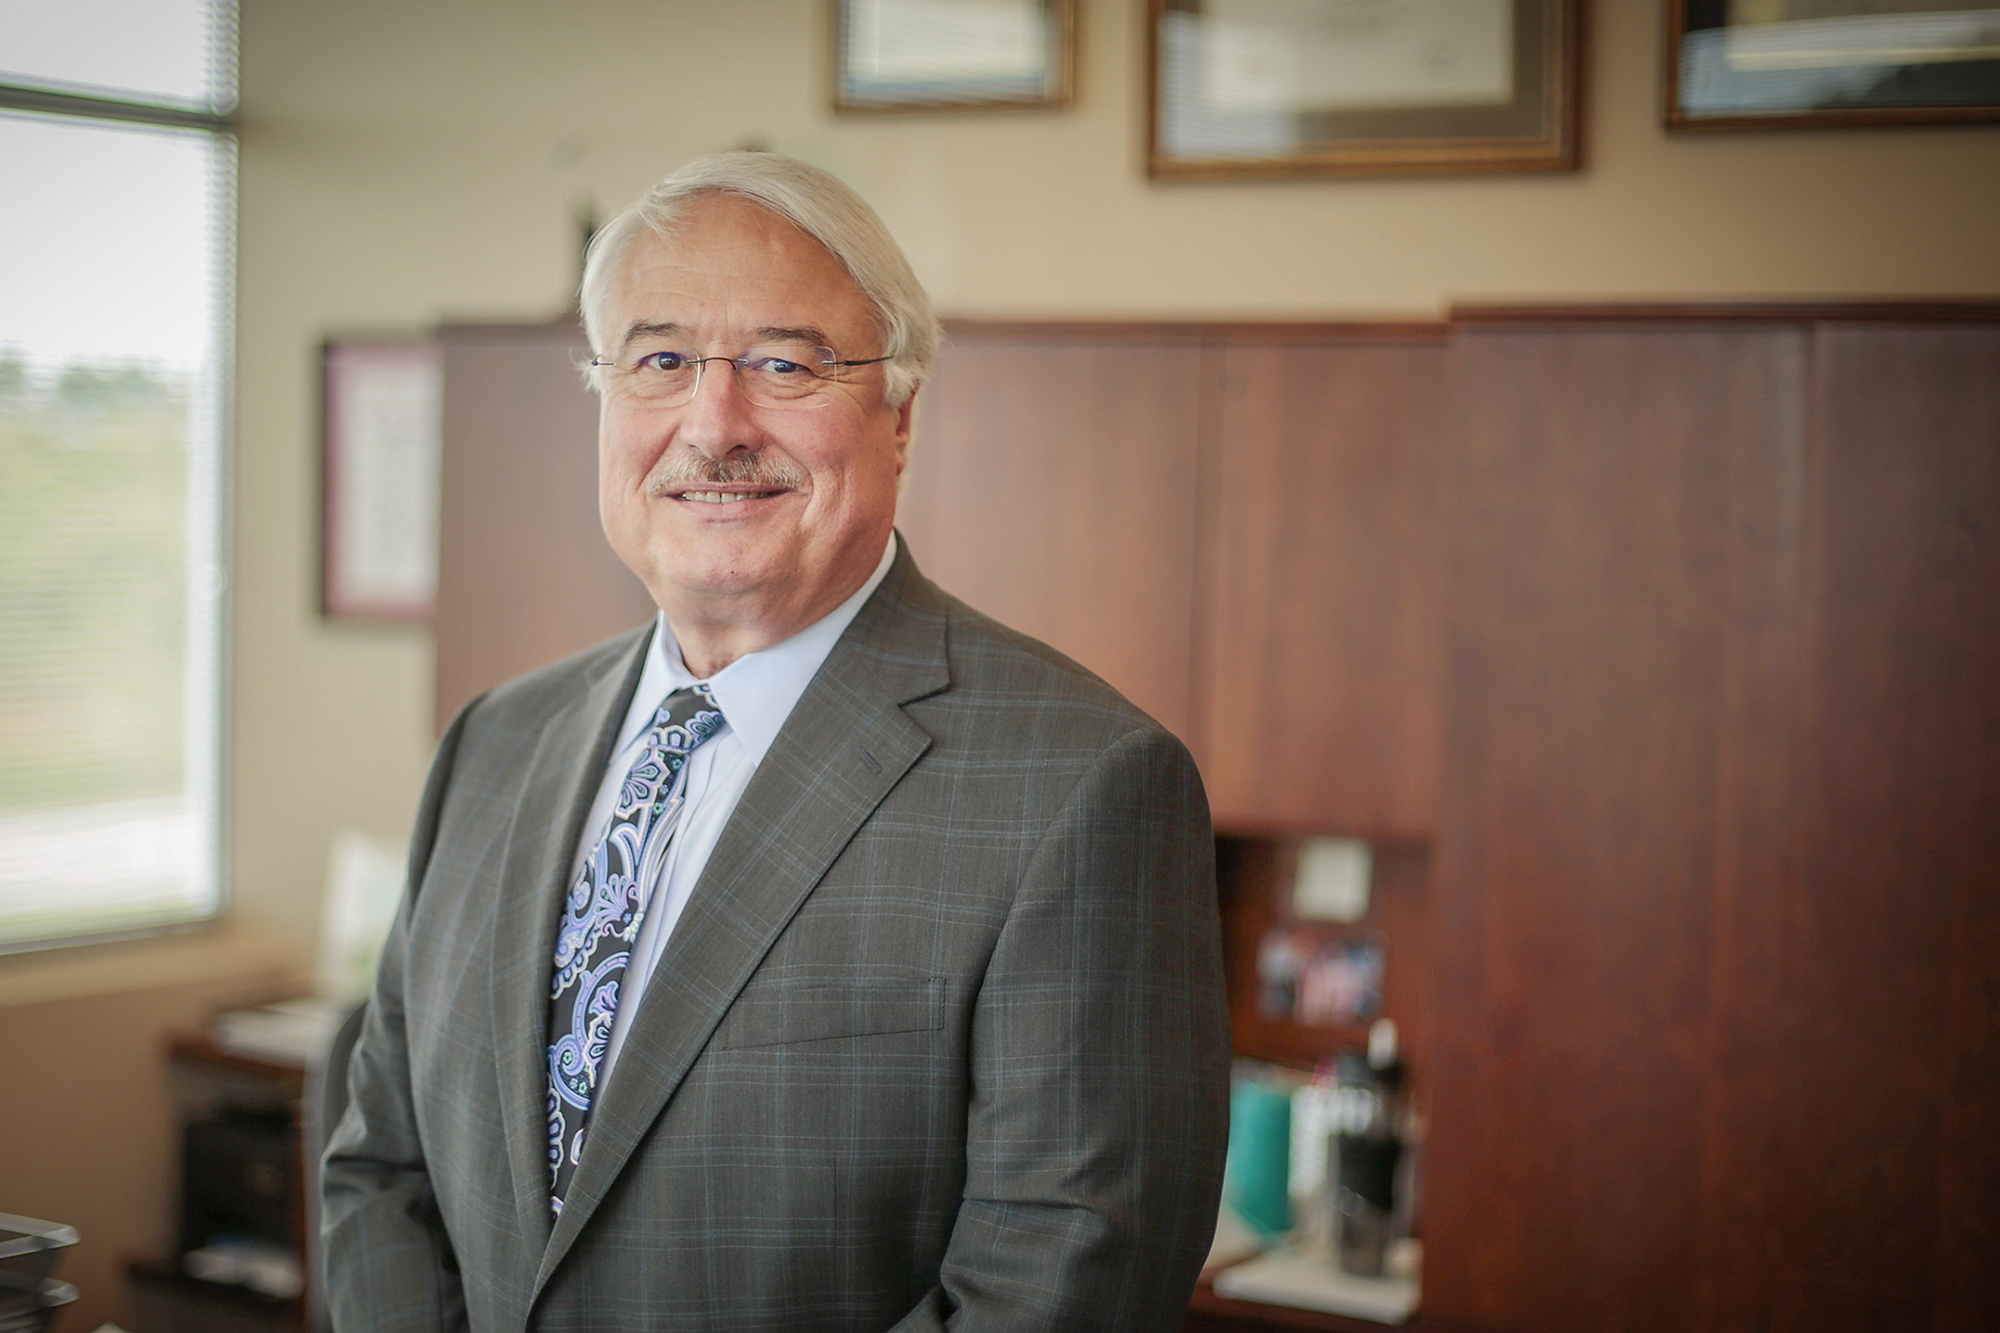 John Bell, Director of the Cancer Institute at The University of Tennessee Medical Center